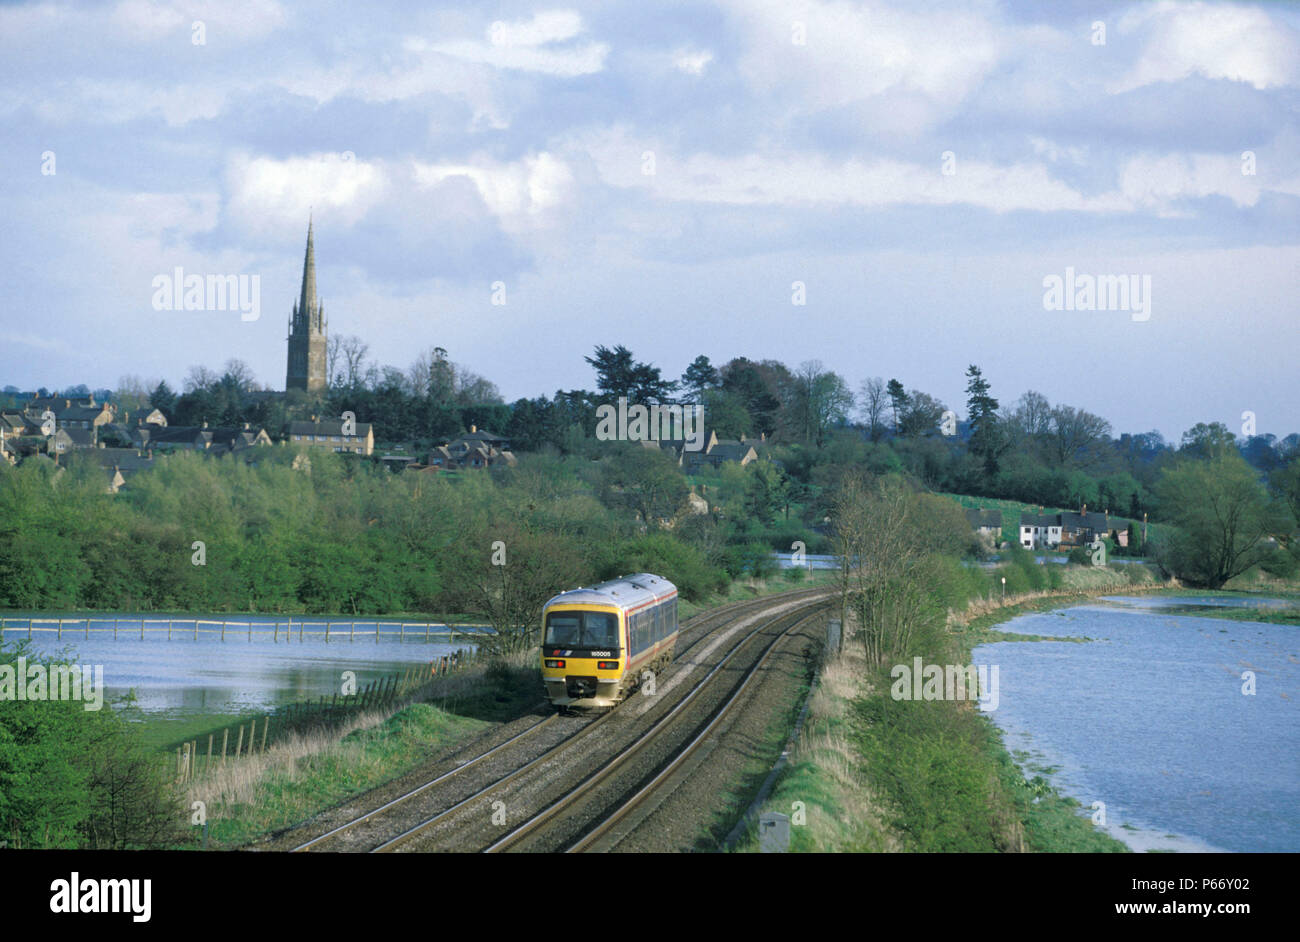 Easter Monday 1998 sees the Cherwell Valley around Kings Sutton flooded by days of rain but this Chiltern Turbo service still runs with its train from Stock Photo